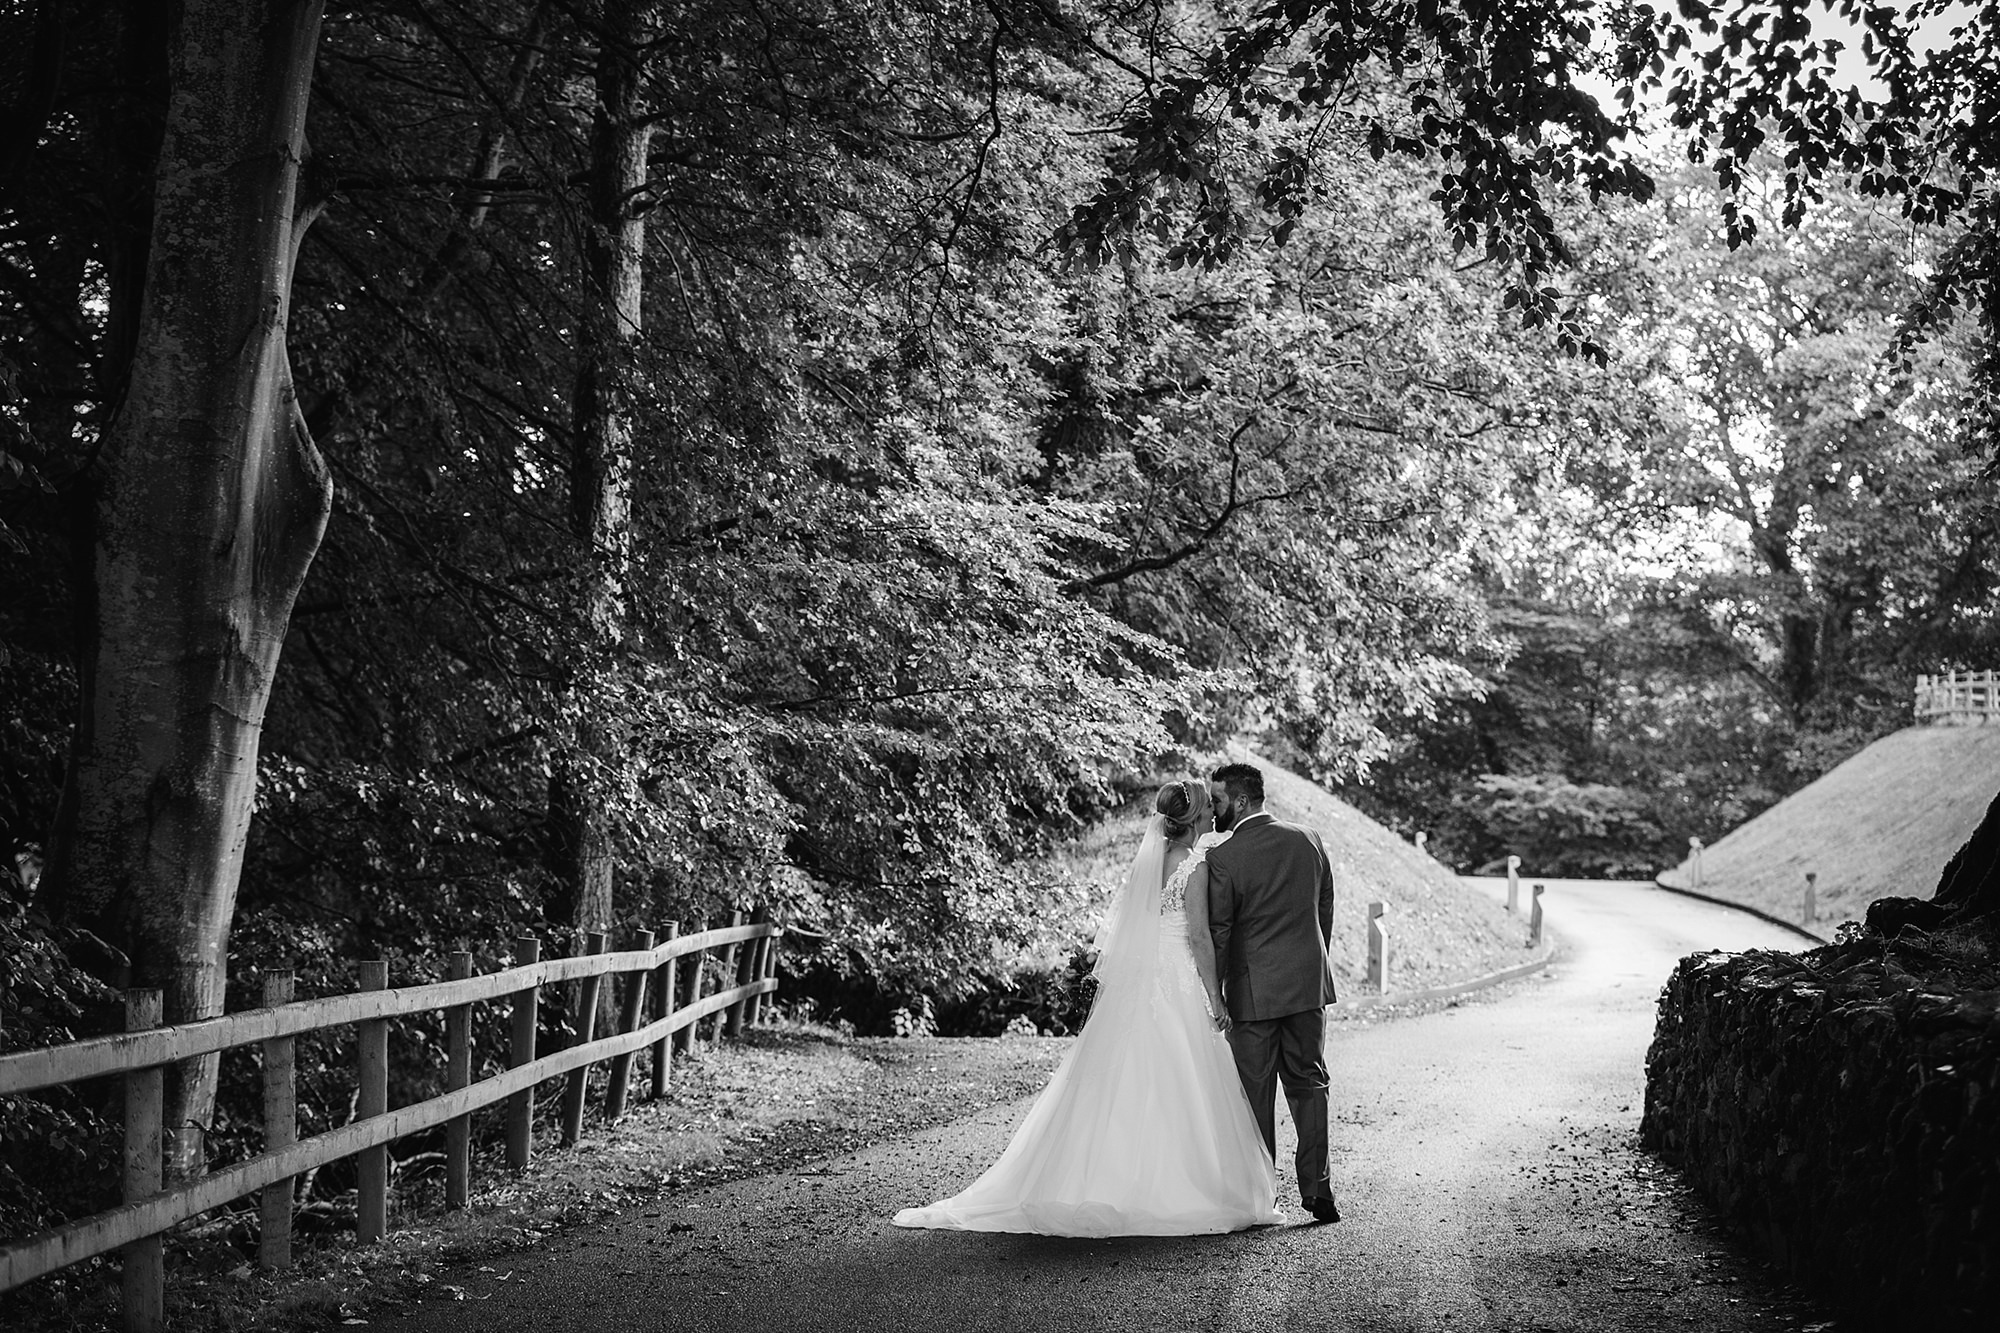 A fun wedding at Plas Isaf bride and groom portrait under trees